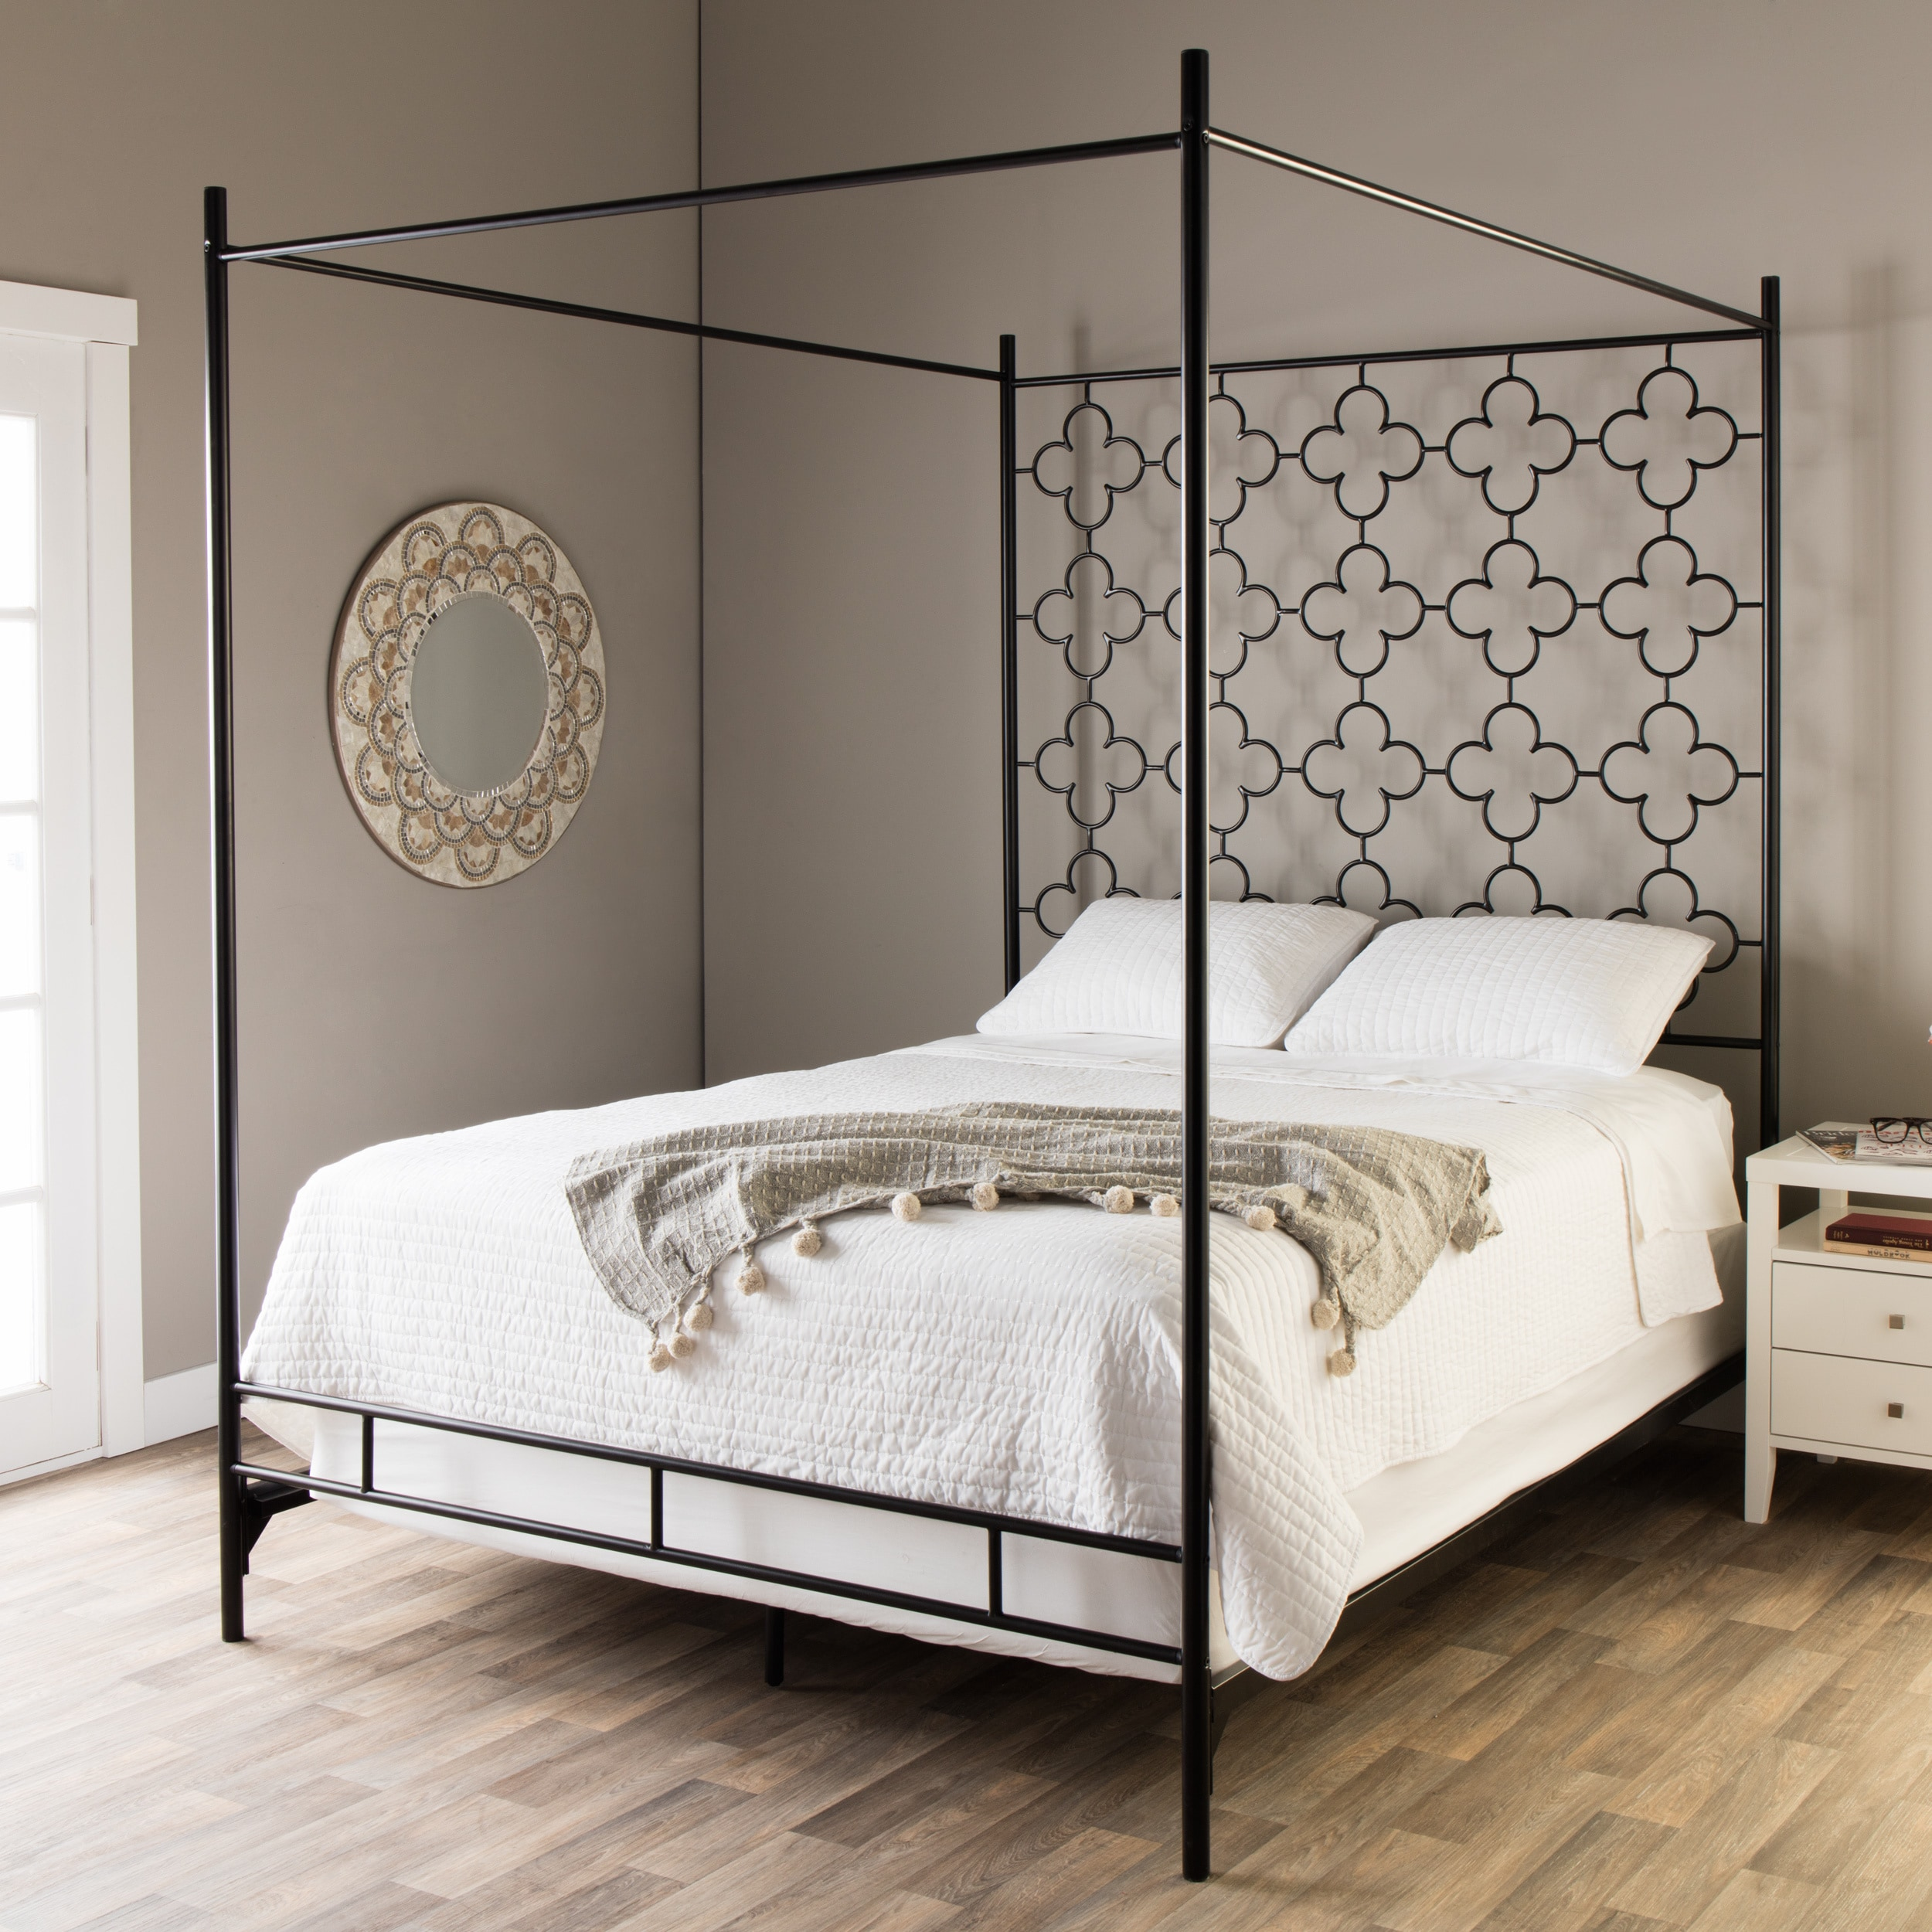 Shop Quatrefoil King Canopy Bed